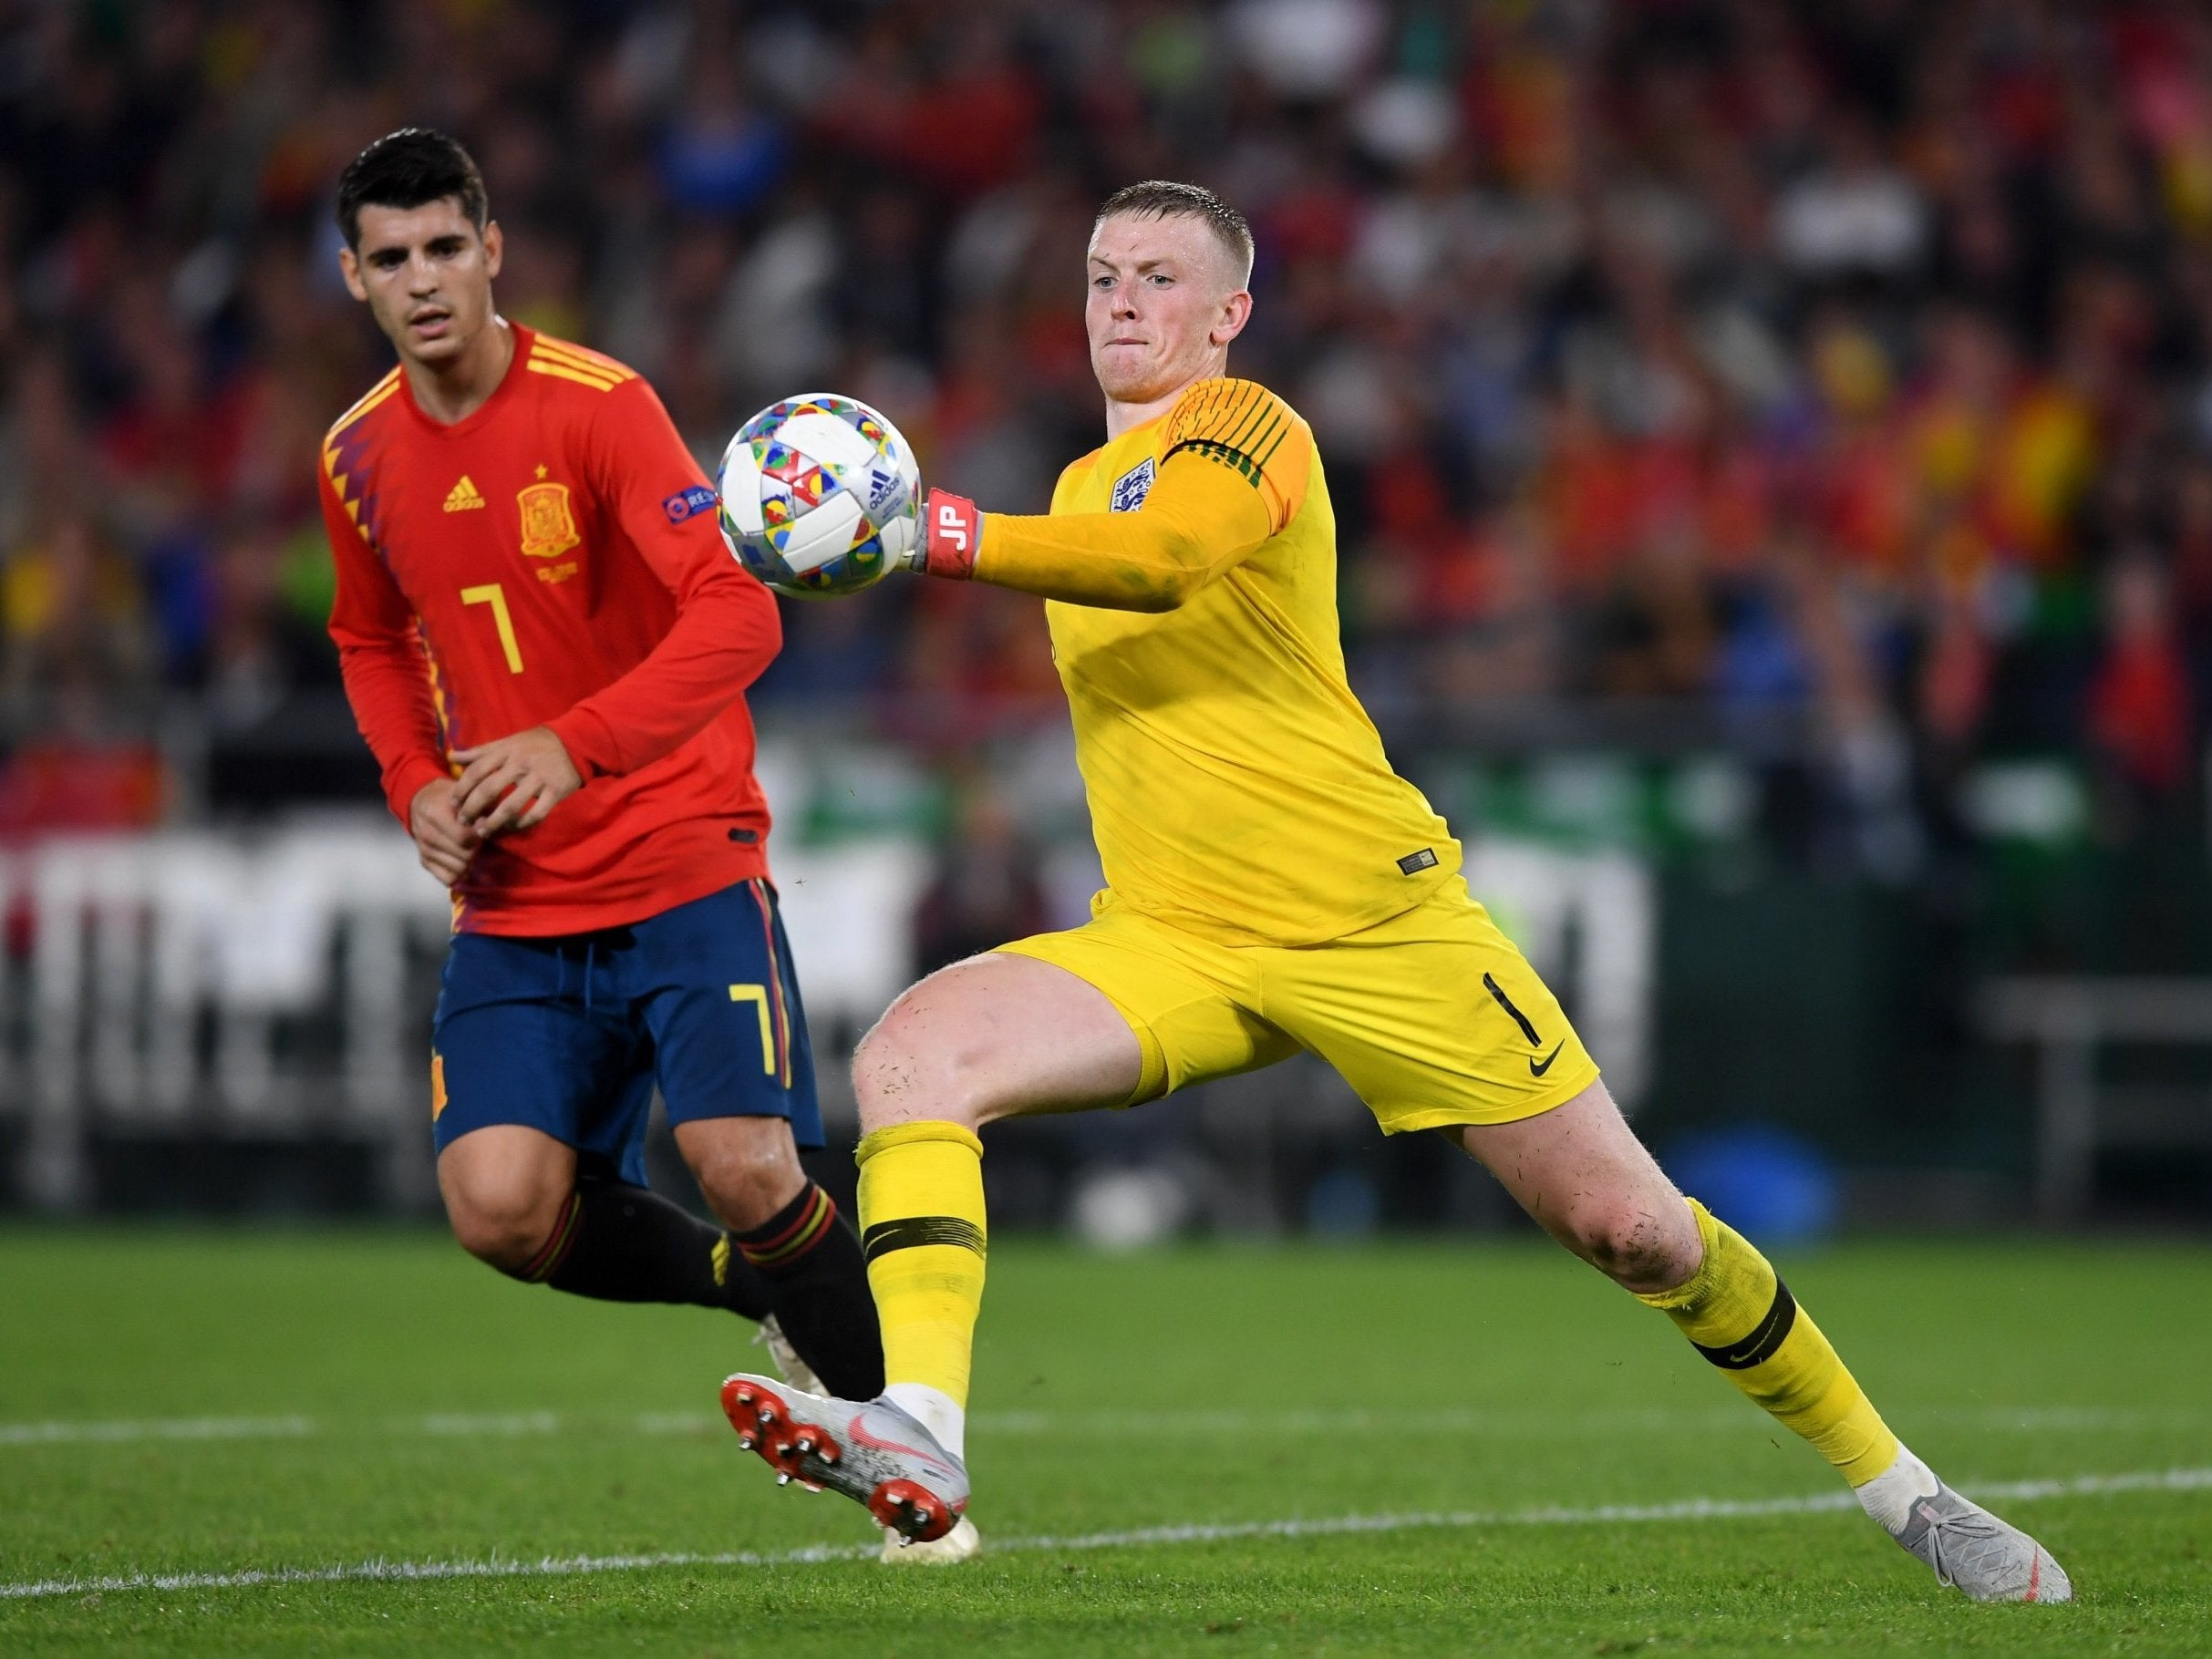 Jordan Pickford S Ability To Play With His Feet Opens A